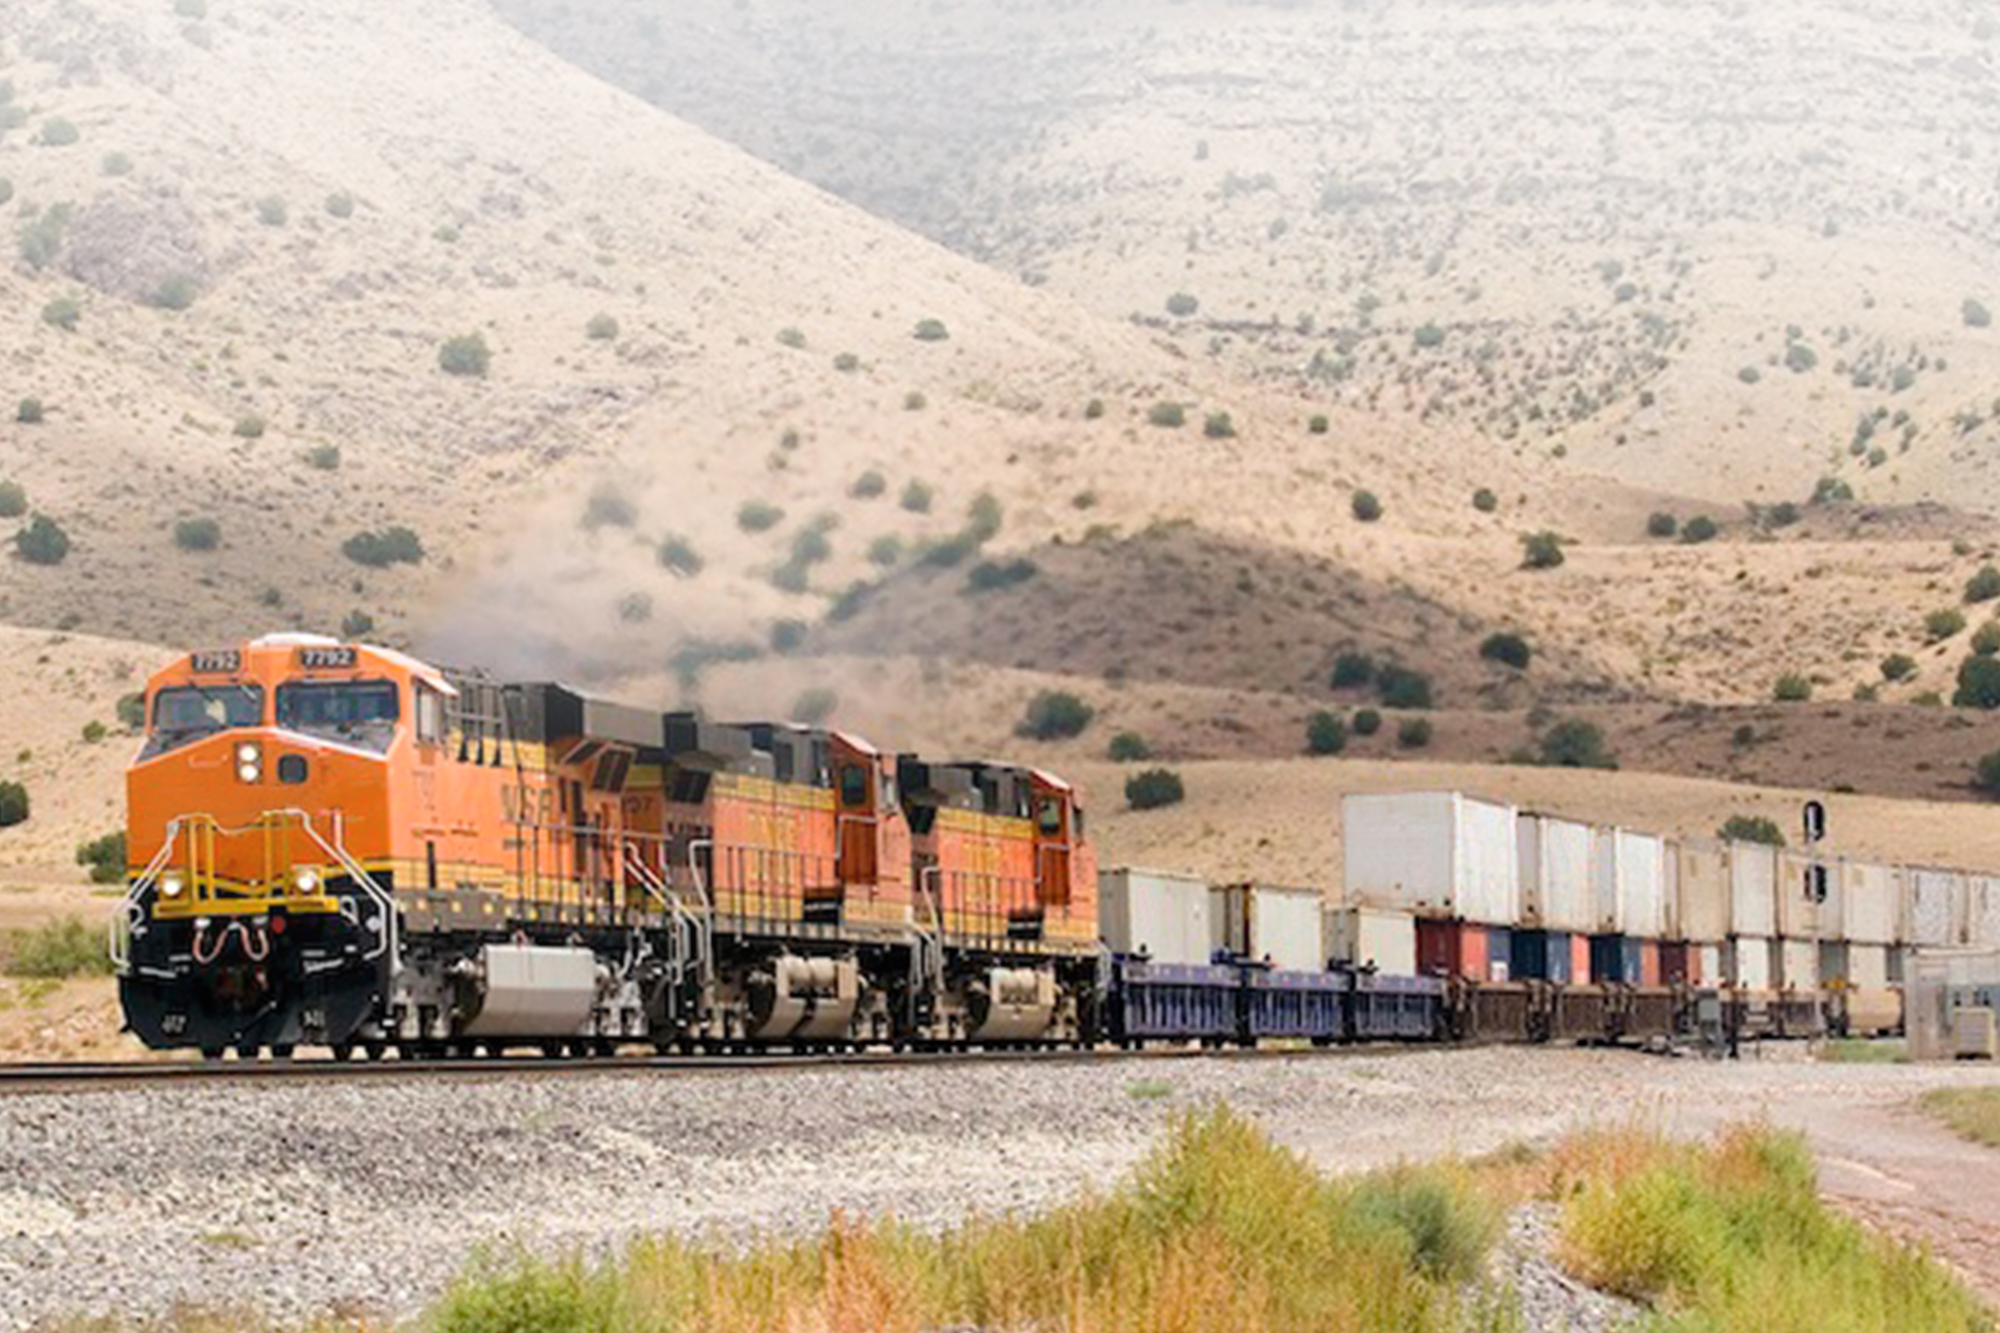 Train Carrying Intermodal Containers